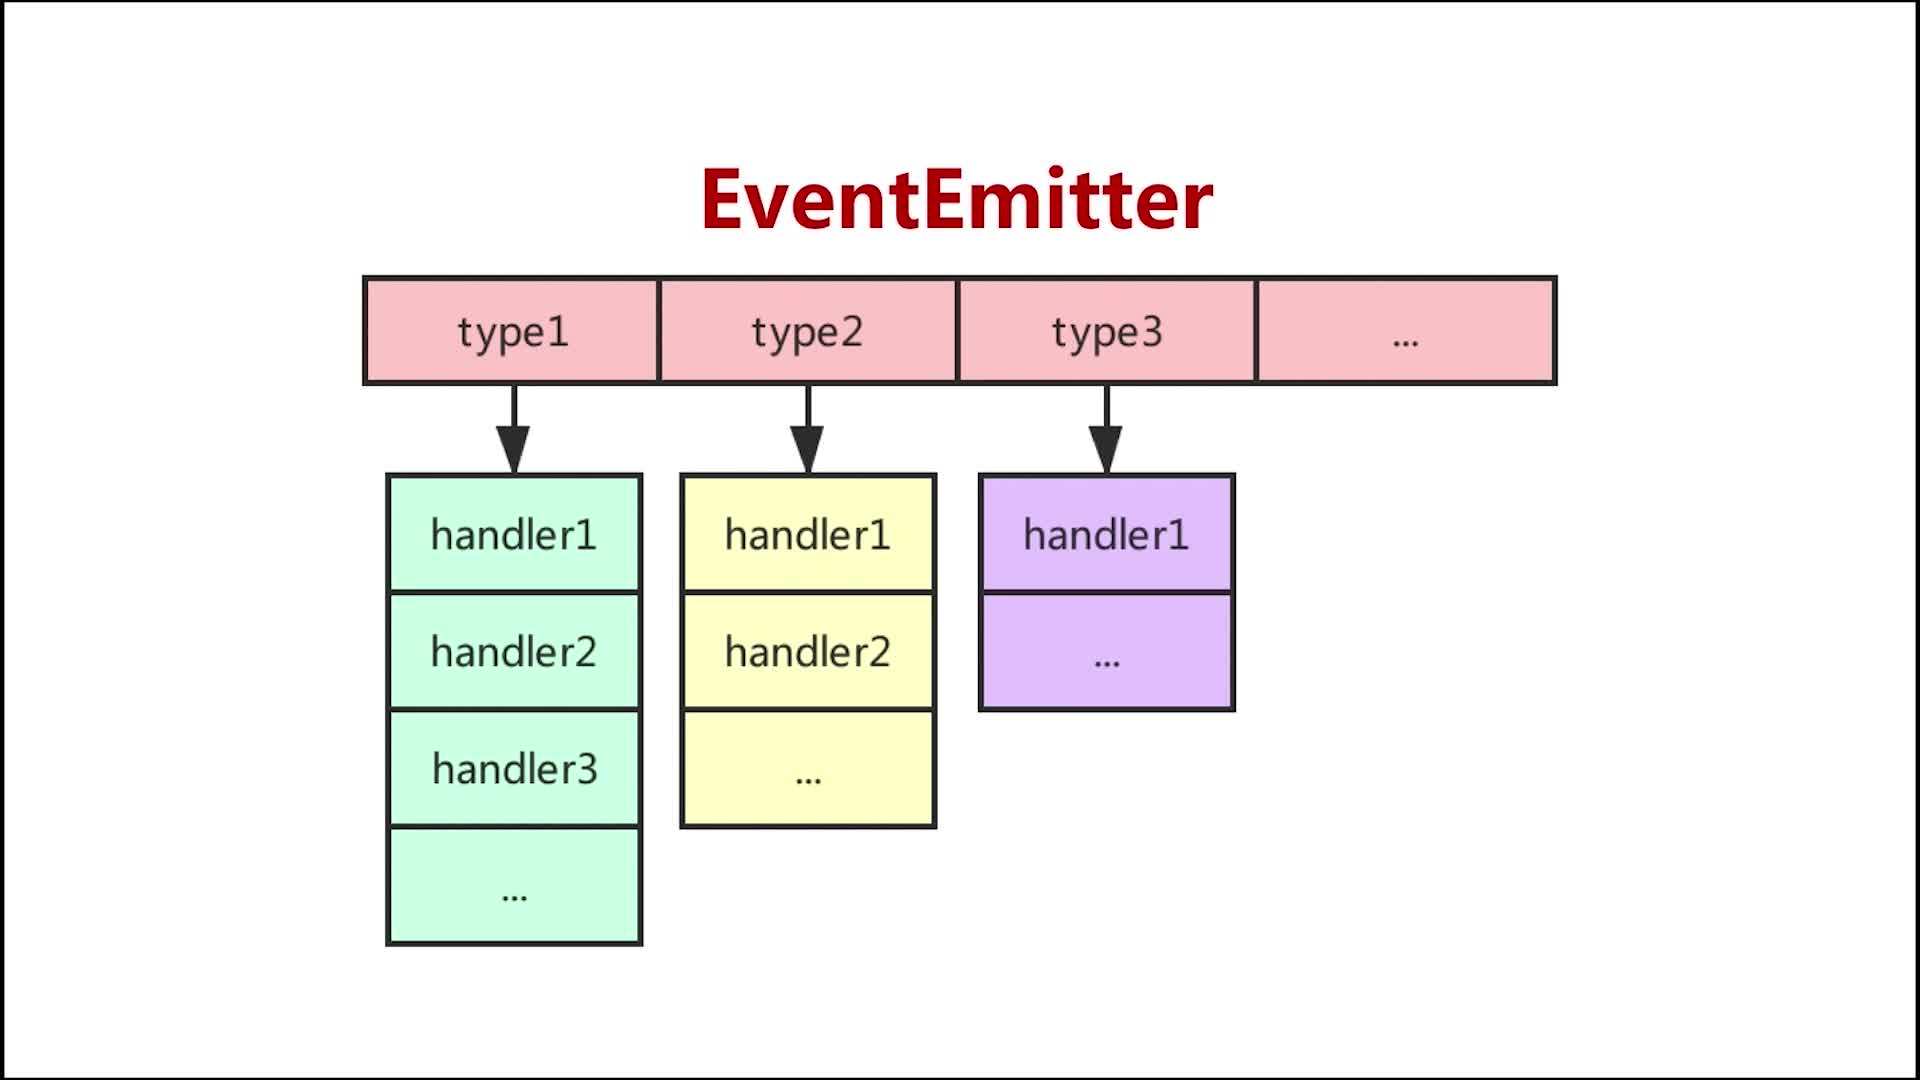 EventEmitter